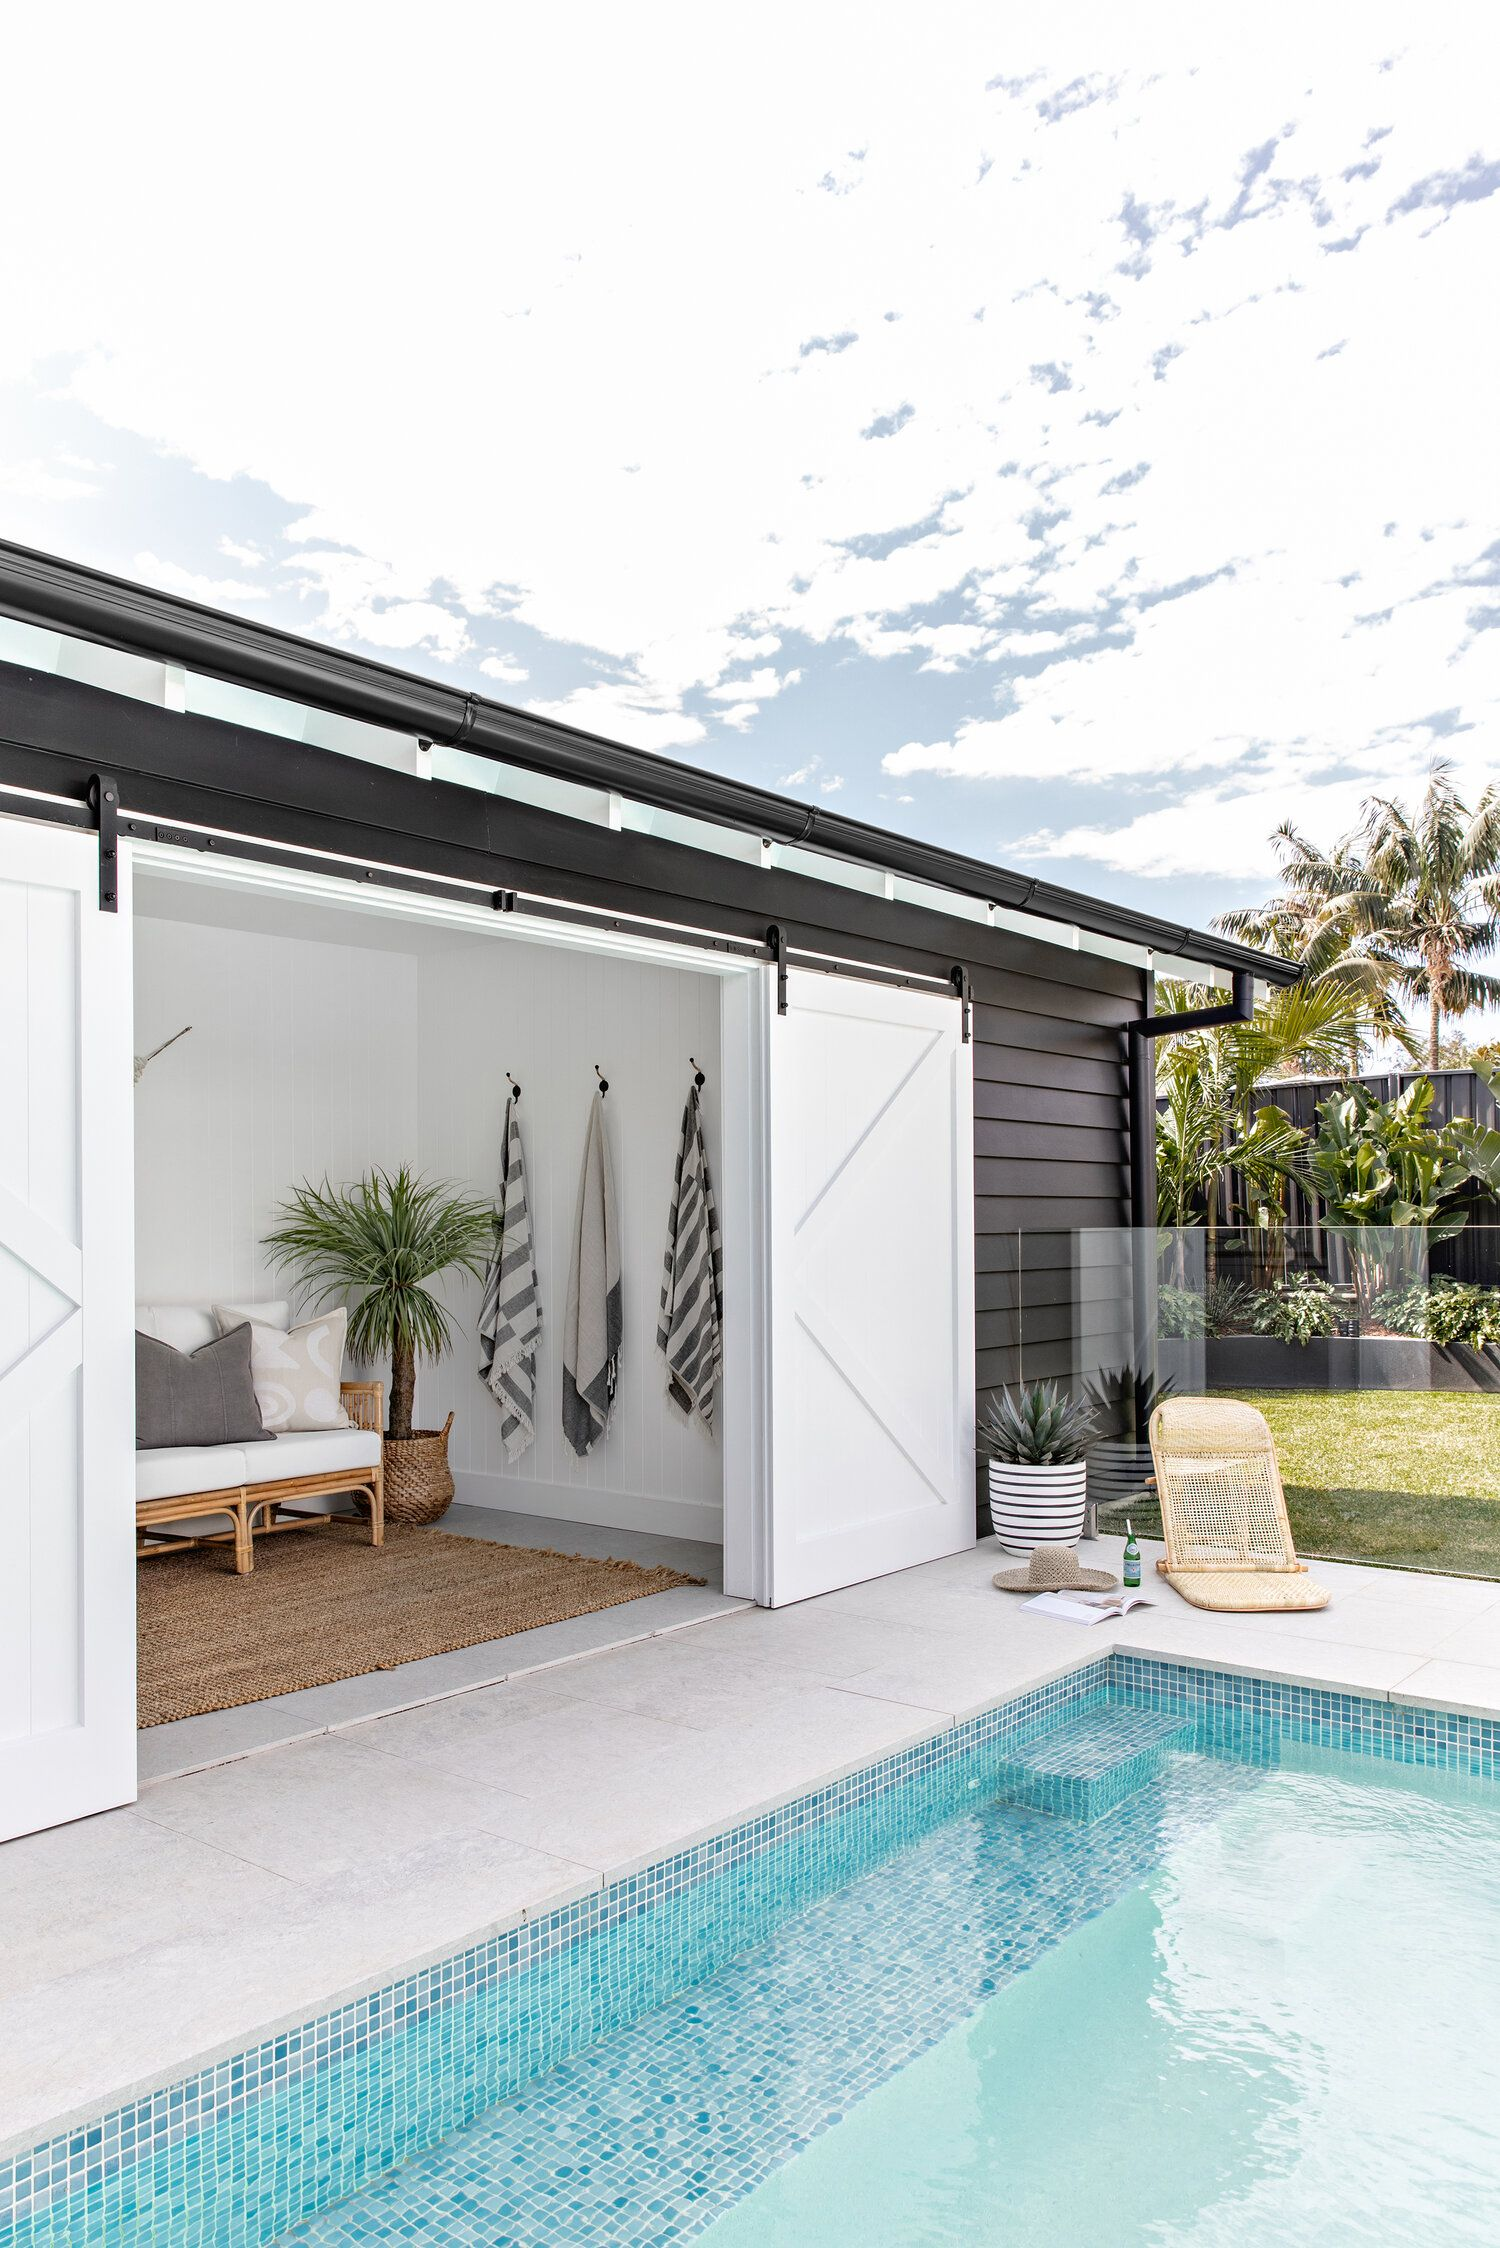 Great Heights Adore Home Magazine In 2021 Pool House Designs House And Home Magazine Pool Houses Backyard pool house designs